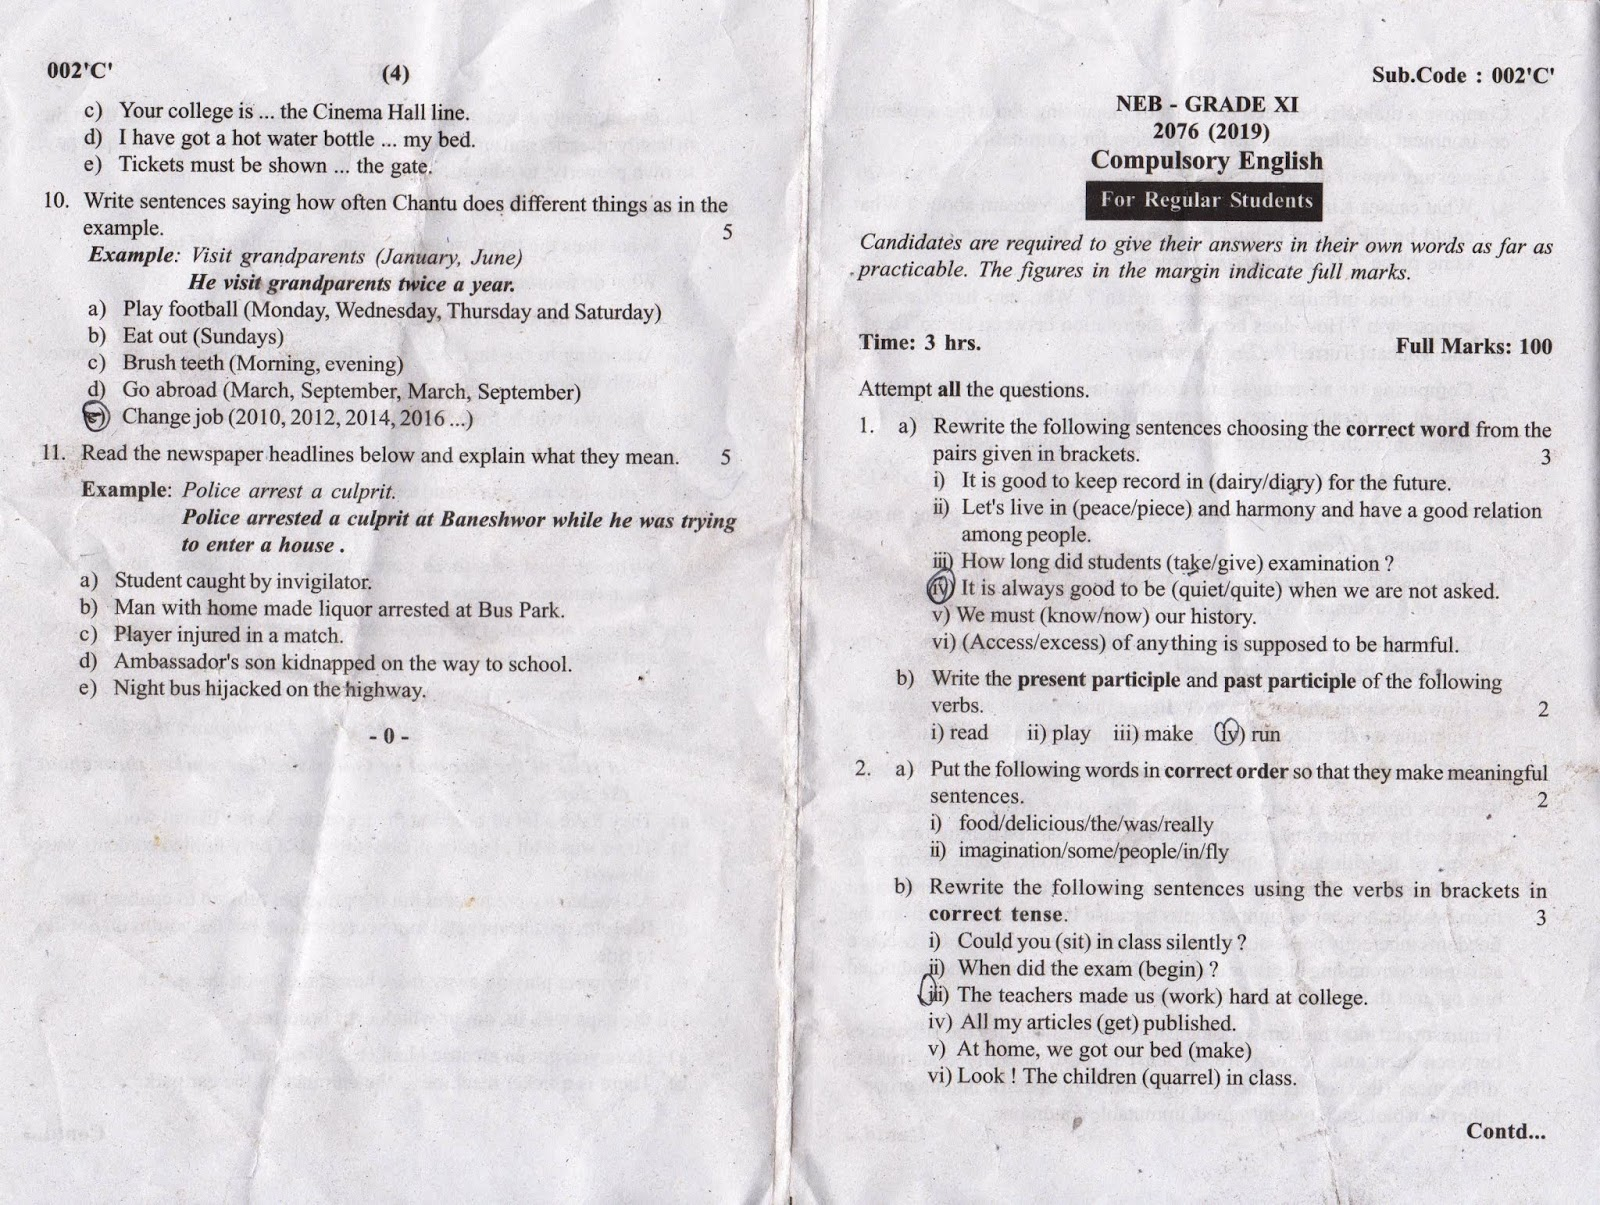 Class 11 Compulsory English, Question Paper 2076